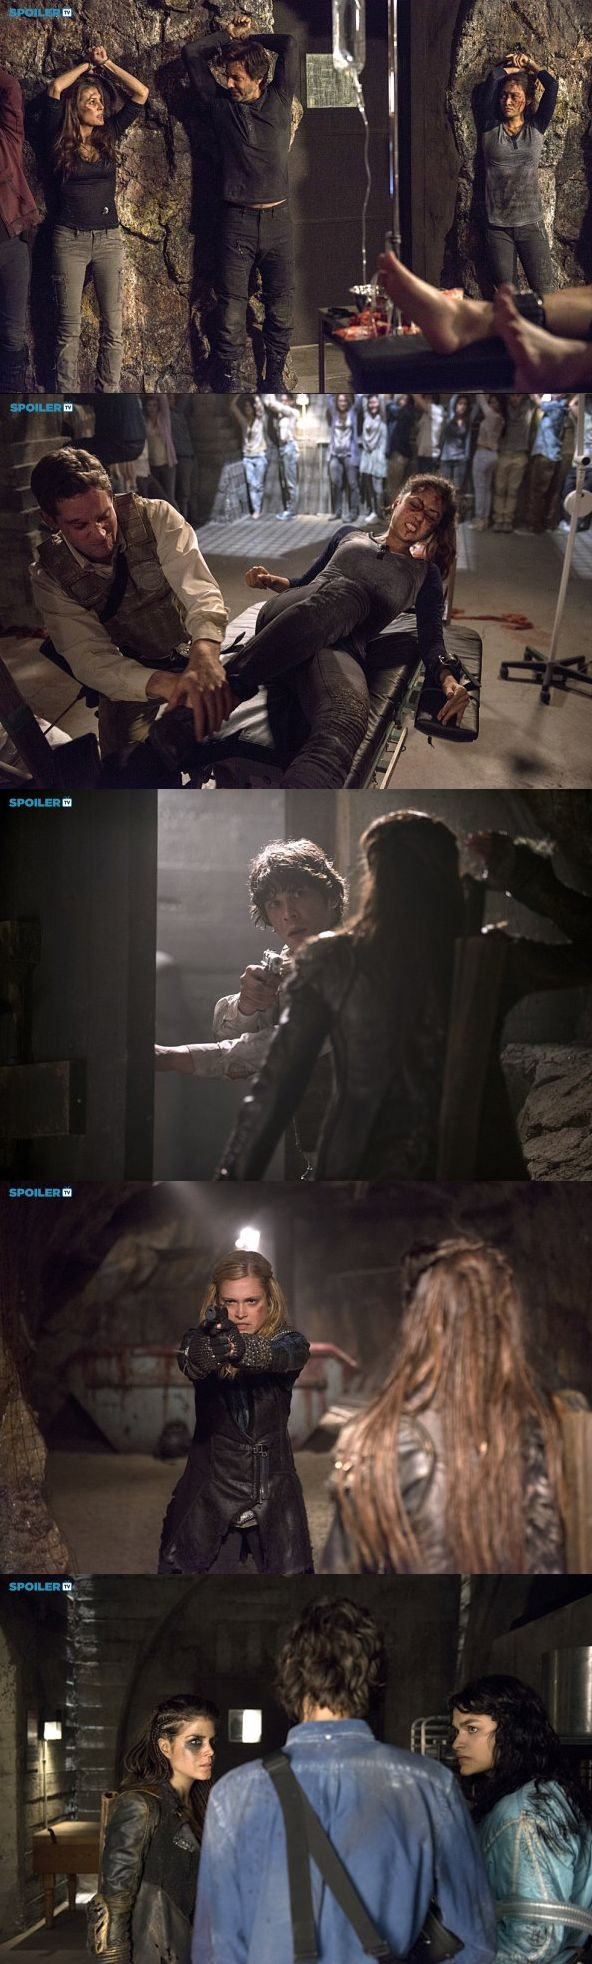 The 100 season 2 episode 16 - Blood most have blood pt 2 Promotional Pictures || The 100 season 2 finale || Abby Griffin, Marcus Kane, Raven Reyes, Octavia Blake, Bellamy Blake, Clarke Griffin, Jasper Jordan, Maya